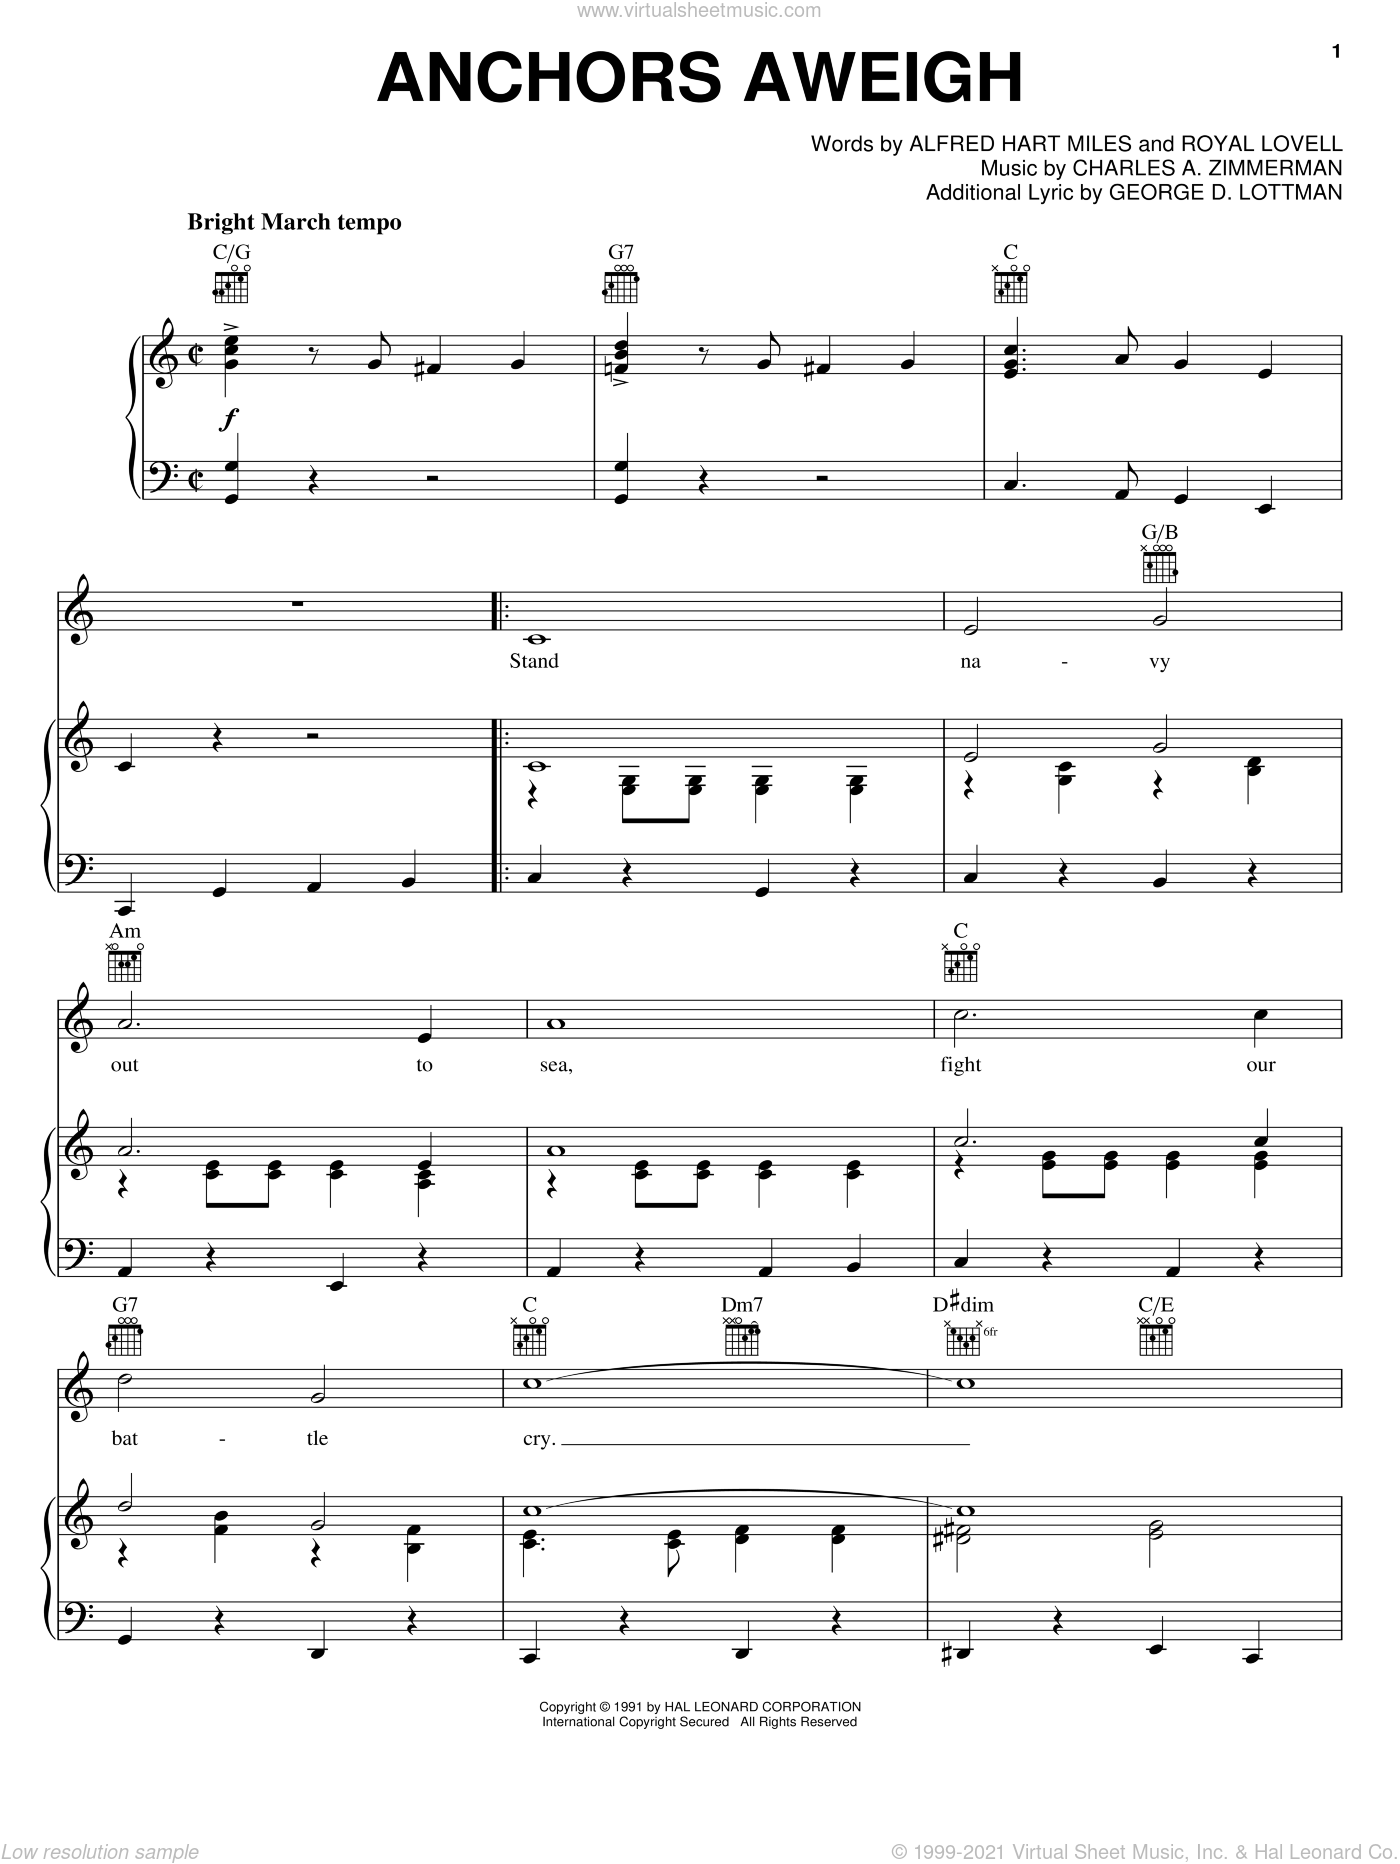 Anchors Aweigh sheet music for voice, piano or guitar by Alfred Hart Miles, Charles A. Zimmerman, George D. Lottman and Royal Lovell, intermediate skill level